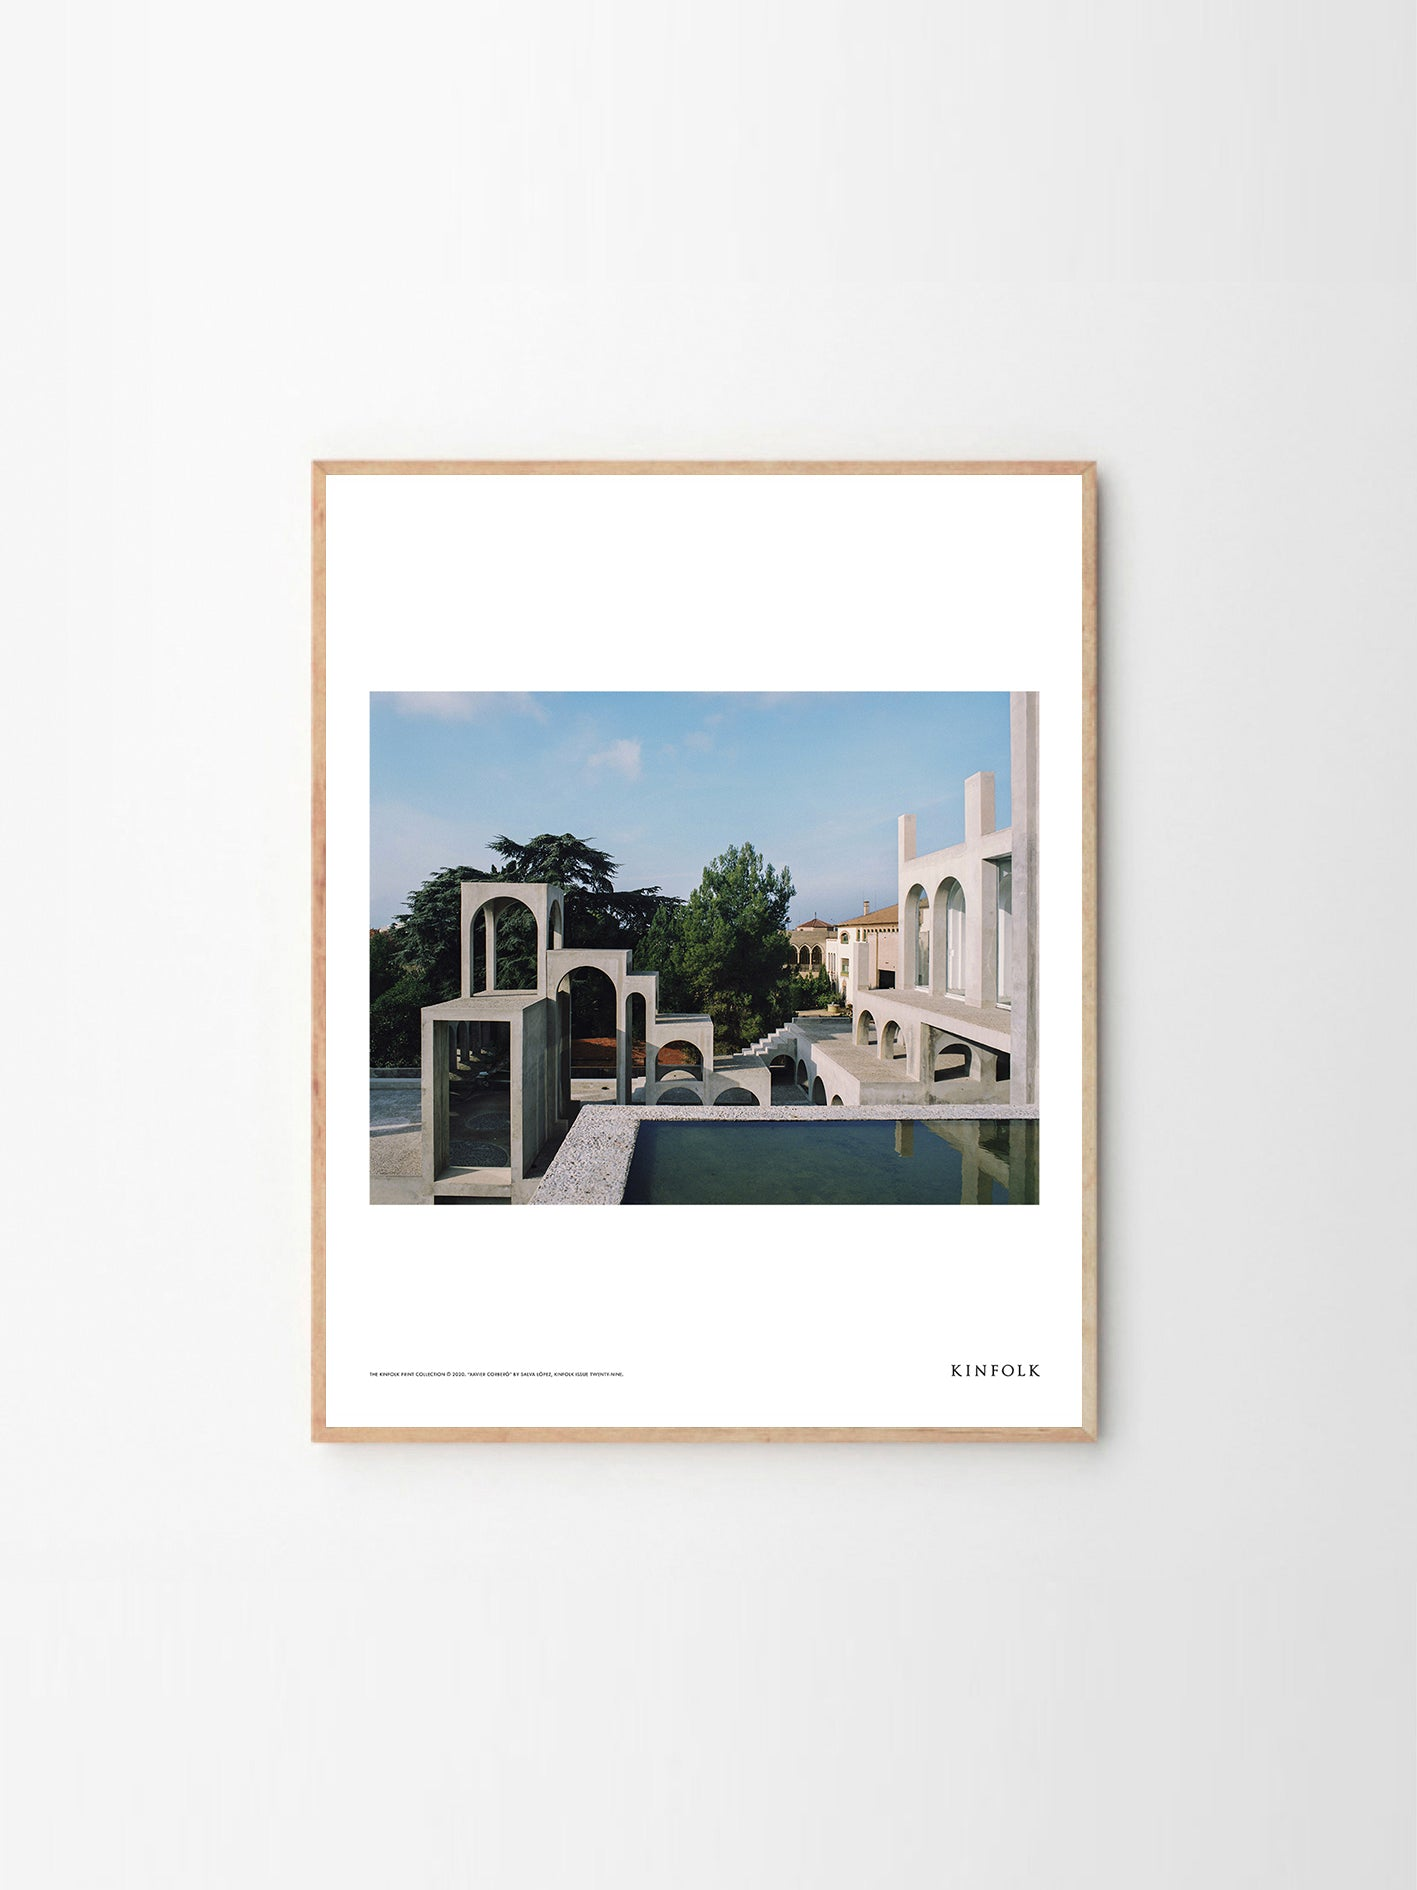 Taos_Living_The_Poster_Club_Kinfolk_x_Alium_Salva_Lopez_Xavier_Corbero_02